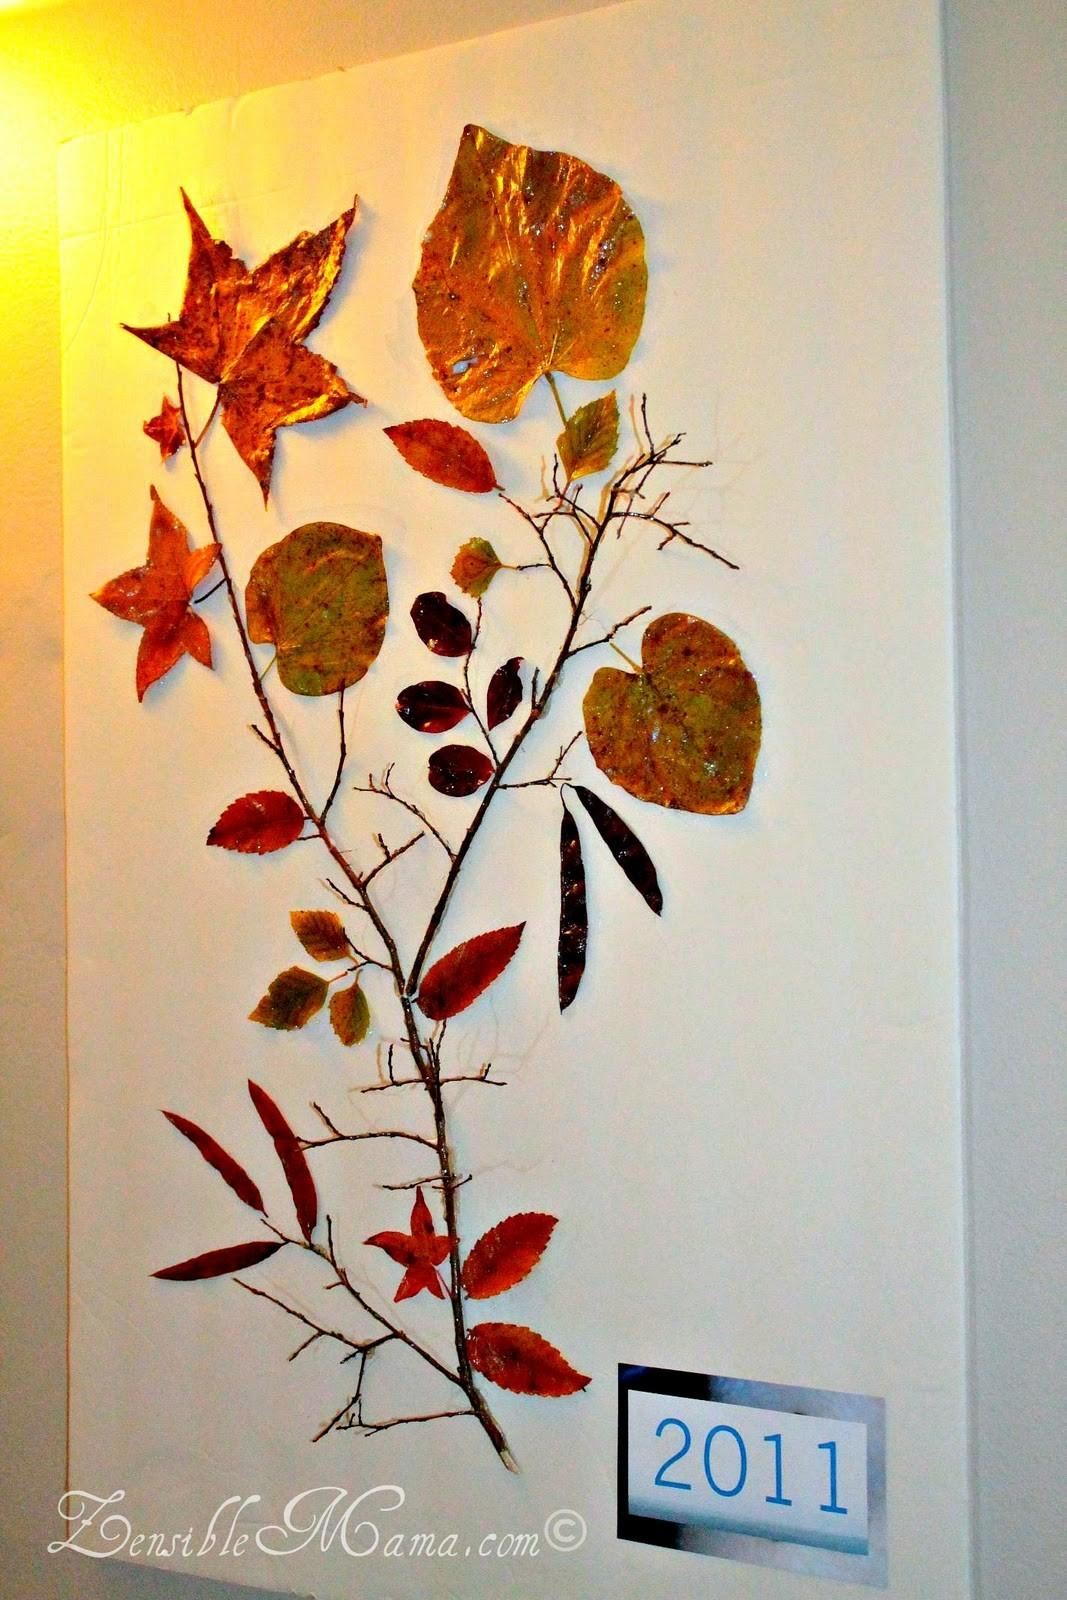 Zensible Mama Diy Fall Leaf Tree Branch Wall Art